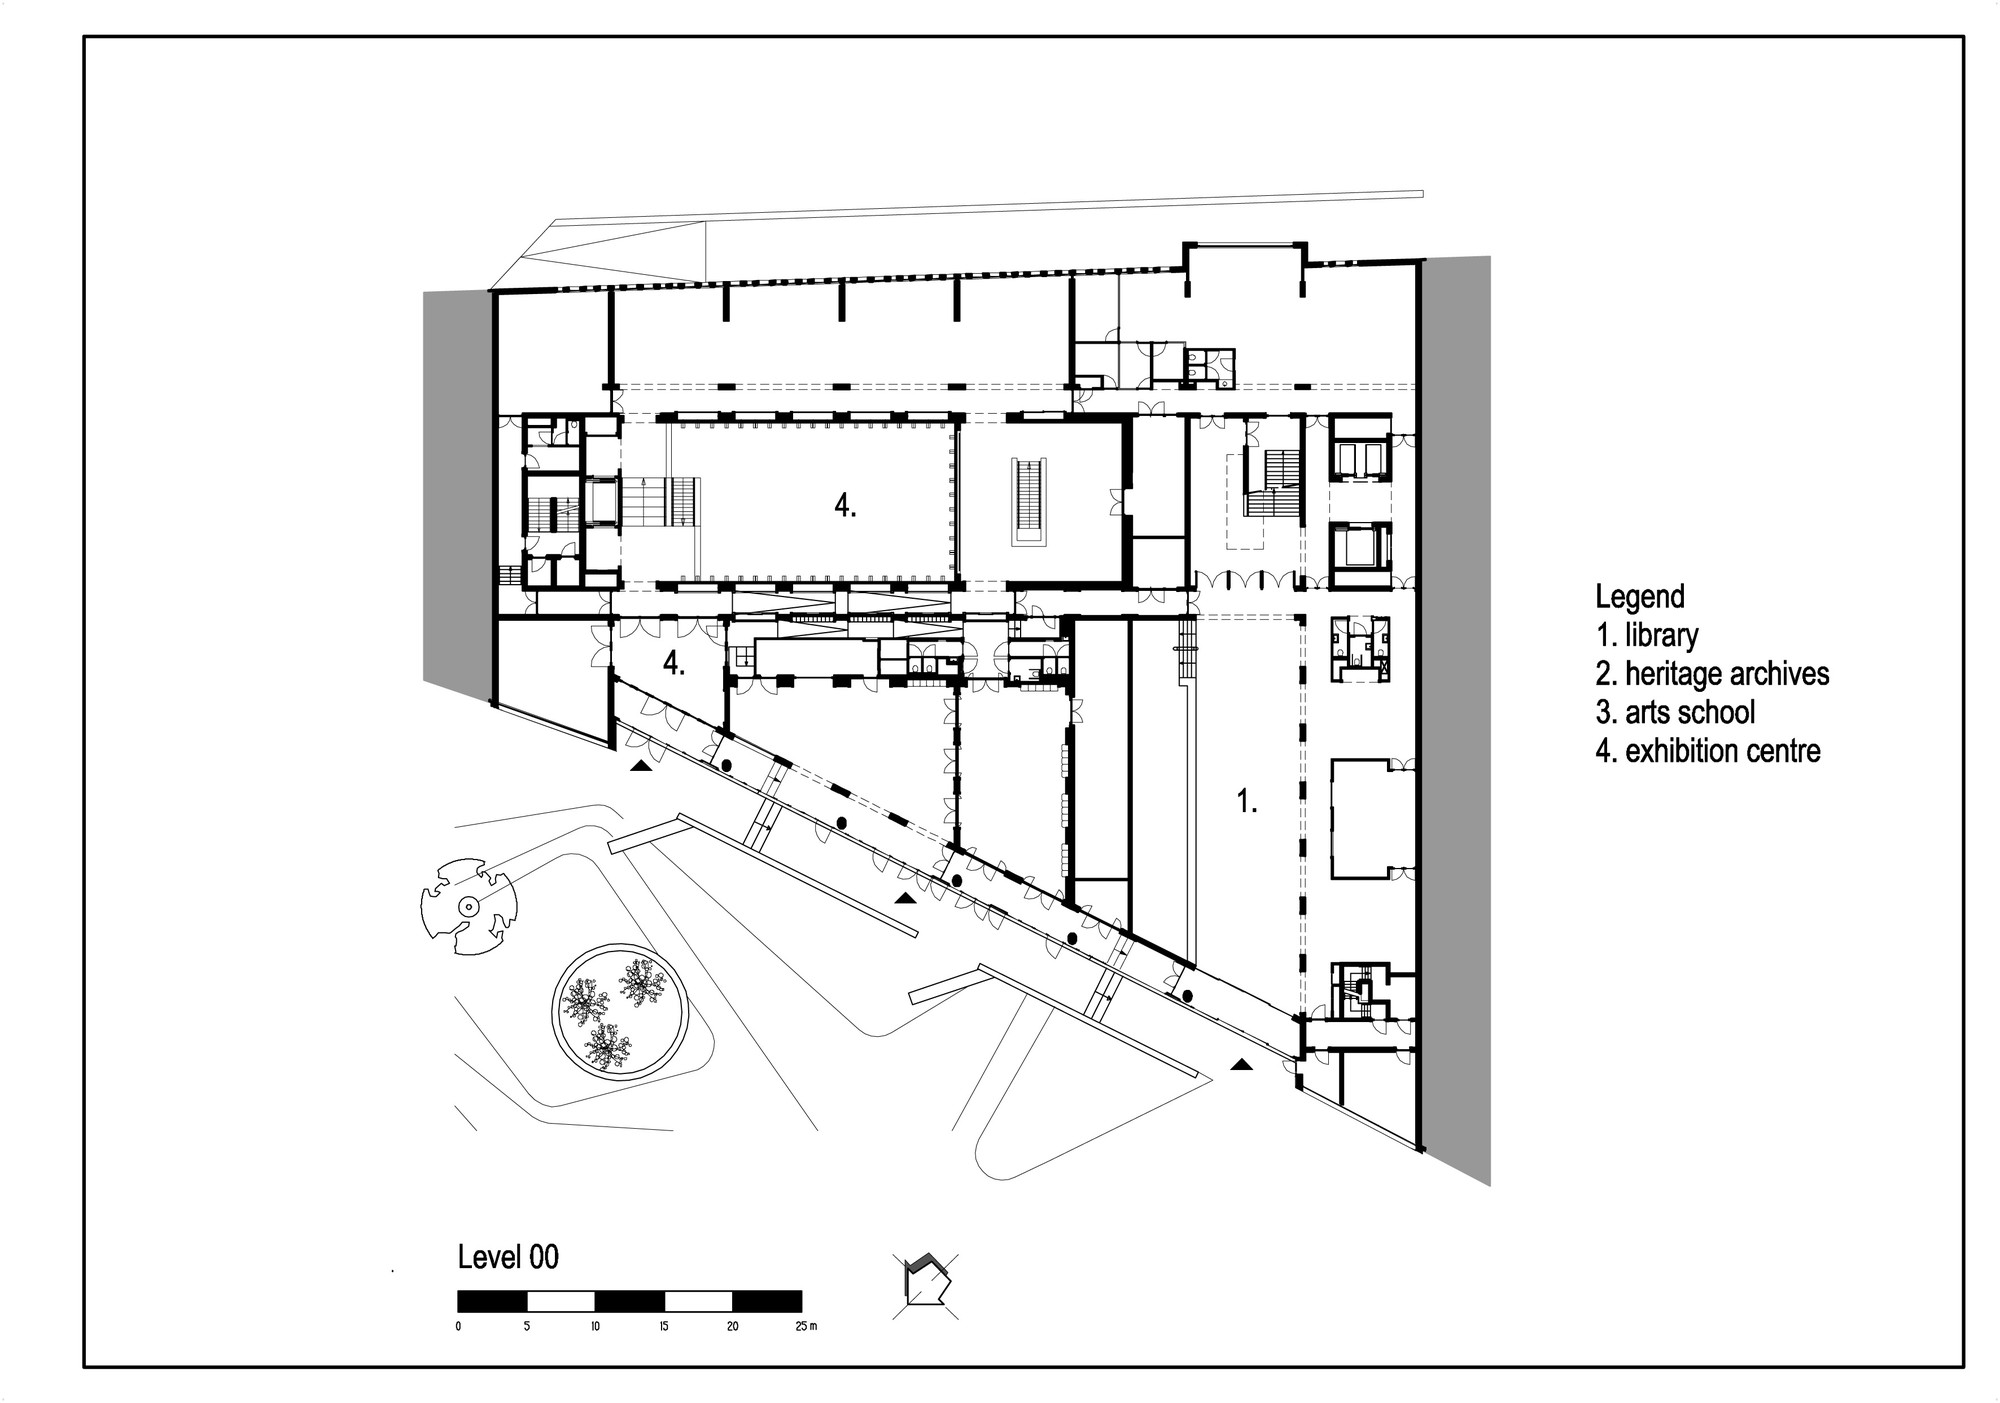 Gallery of culture house eemhuis neutelings riedijk for Traditions of america floor plans